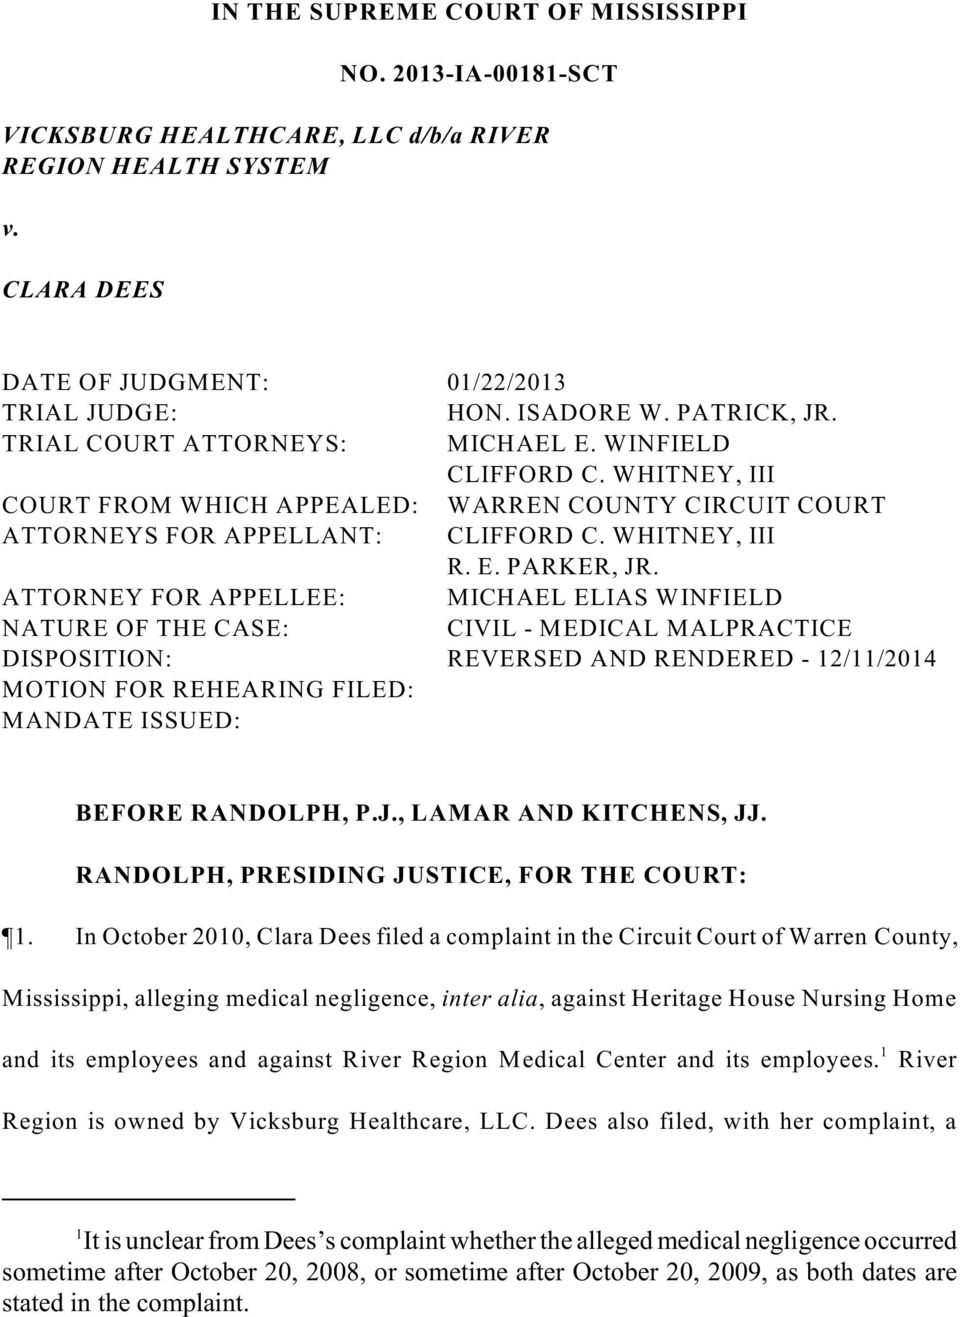 ATTORNEY FOR APPELLEE: MICHAEL ELIAS WINFIELD NATURE OF THE CASE: CIVIL - MEDICAL MALPRACTICE DISPOSITION: REVERSED AND RENDERED - 12/11/2014 MOTION FOR REHEARING FILED: MANDATE ISSUED: BEFORE